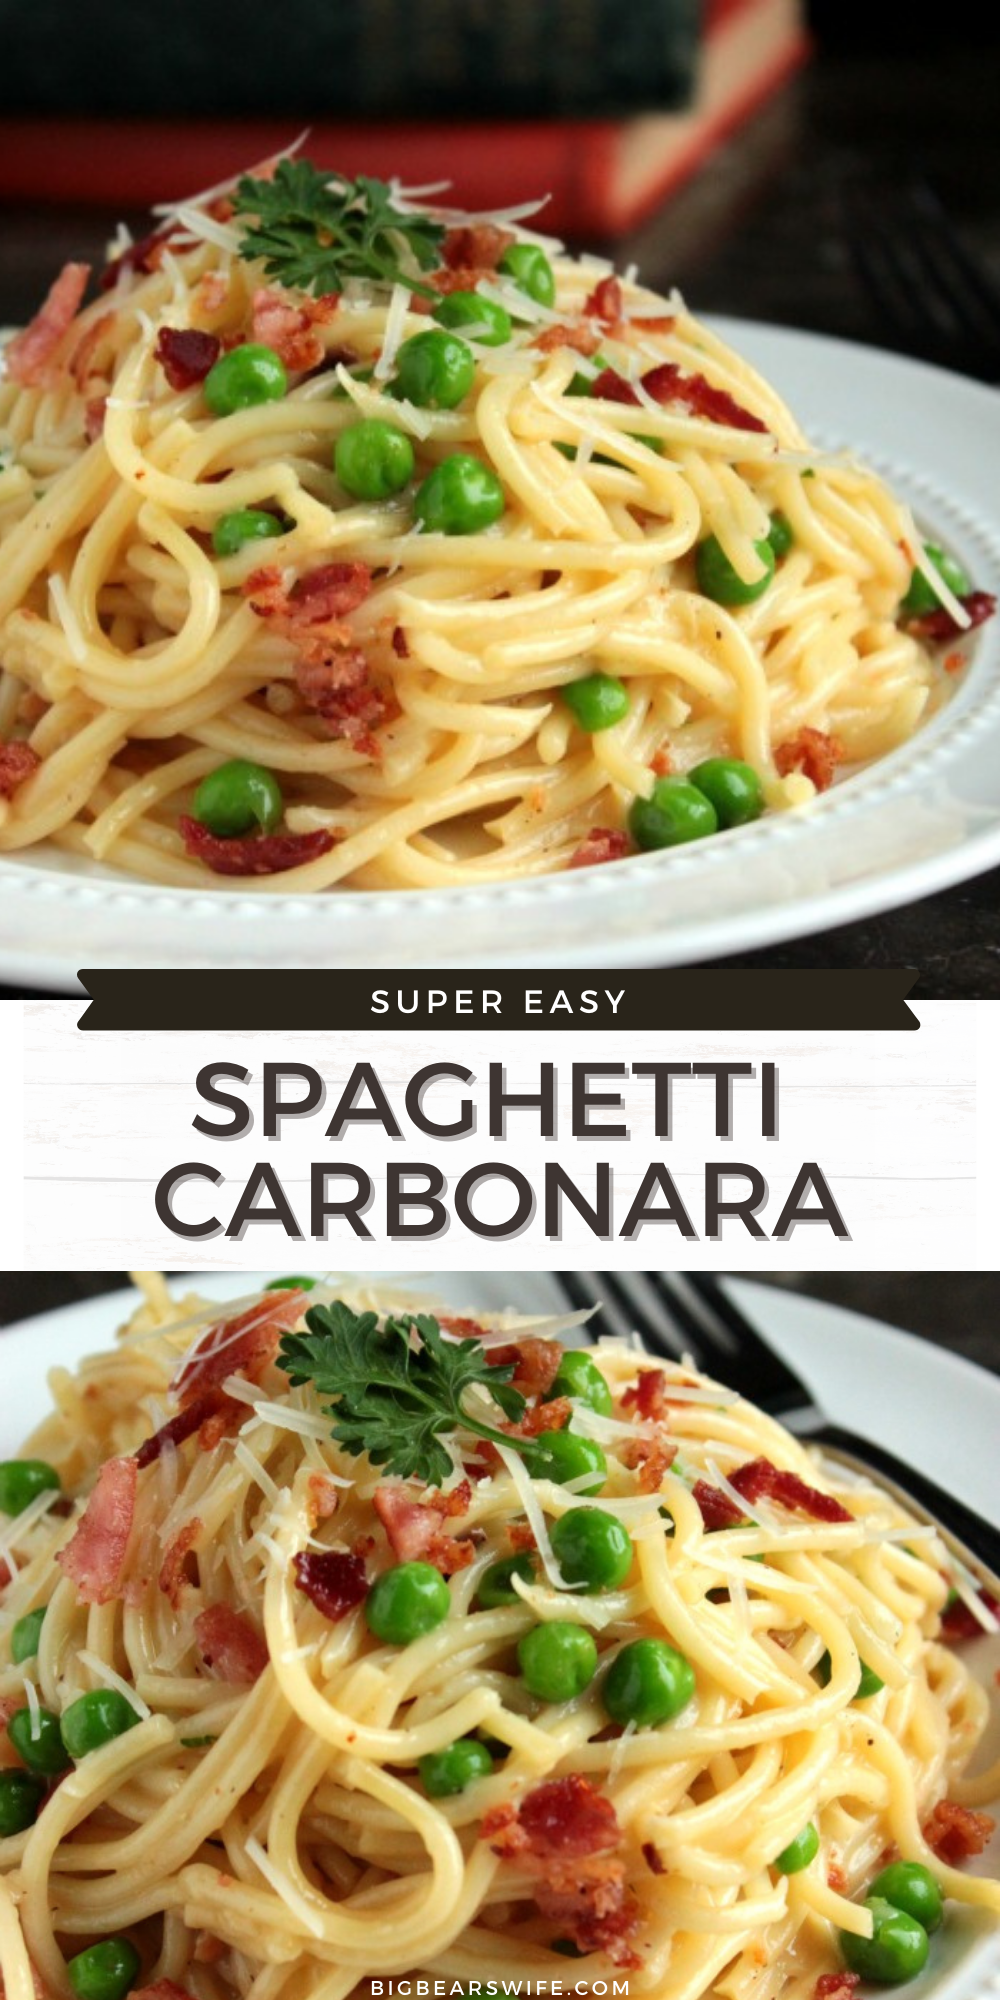 This Spaghetti Carbonara is quick to fix and I haven't met anyone (yet) that doesn't fall in love with it when we make it!